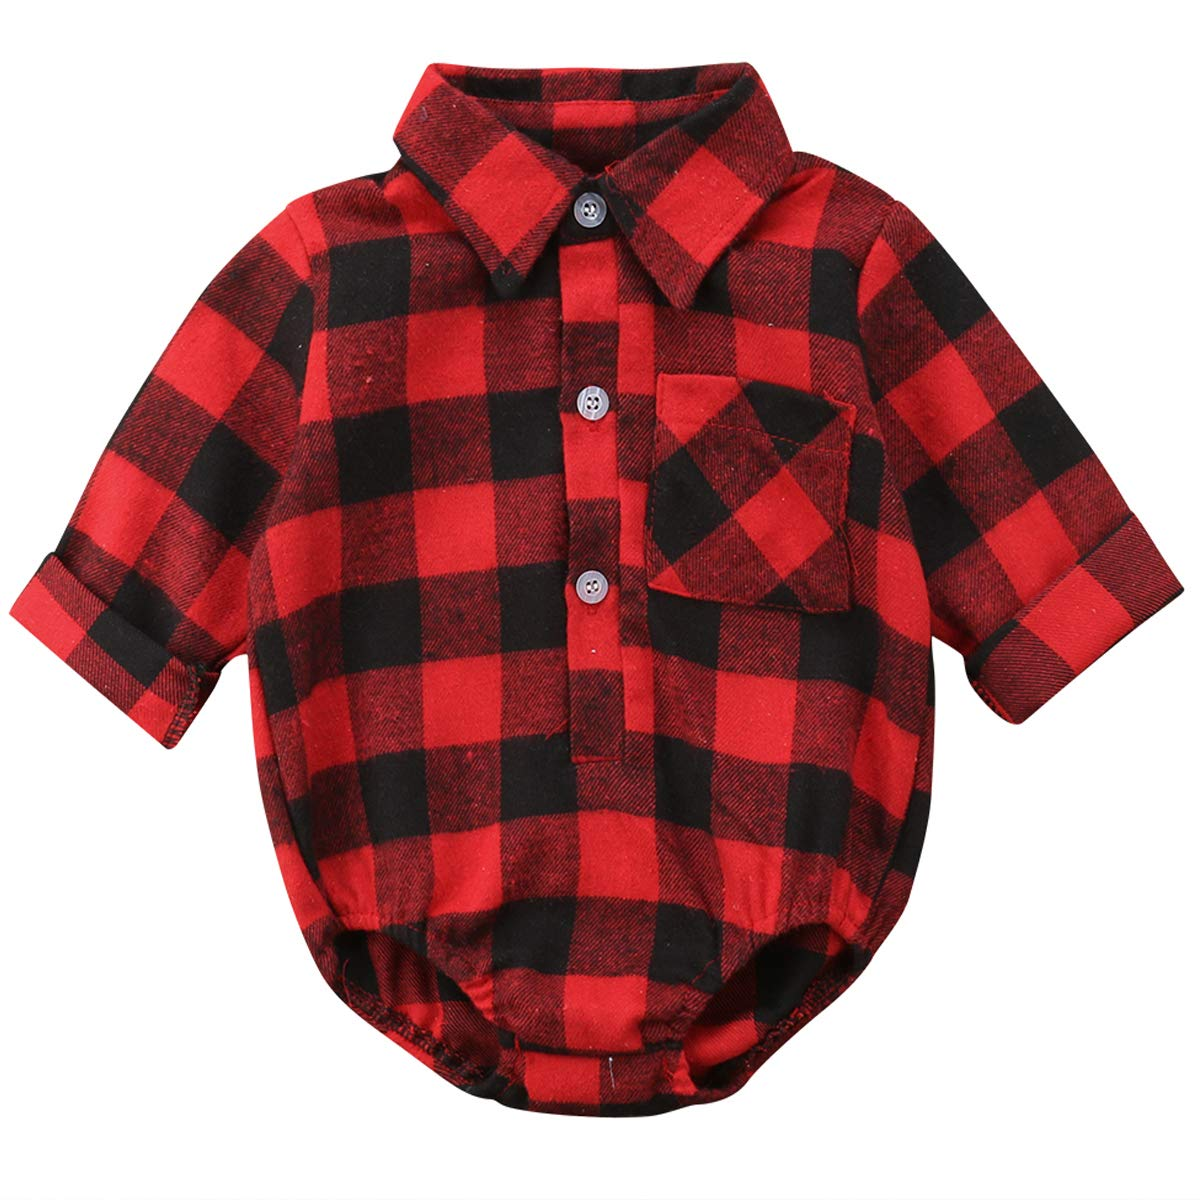 Aunavey Baby Girls Boys You are so Deerly Loved Letters Print Long Sleeve Button Down Plaid Christmas Shirt